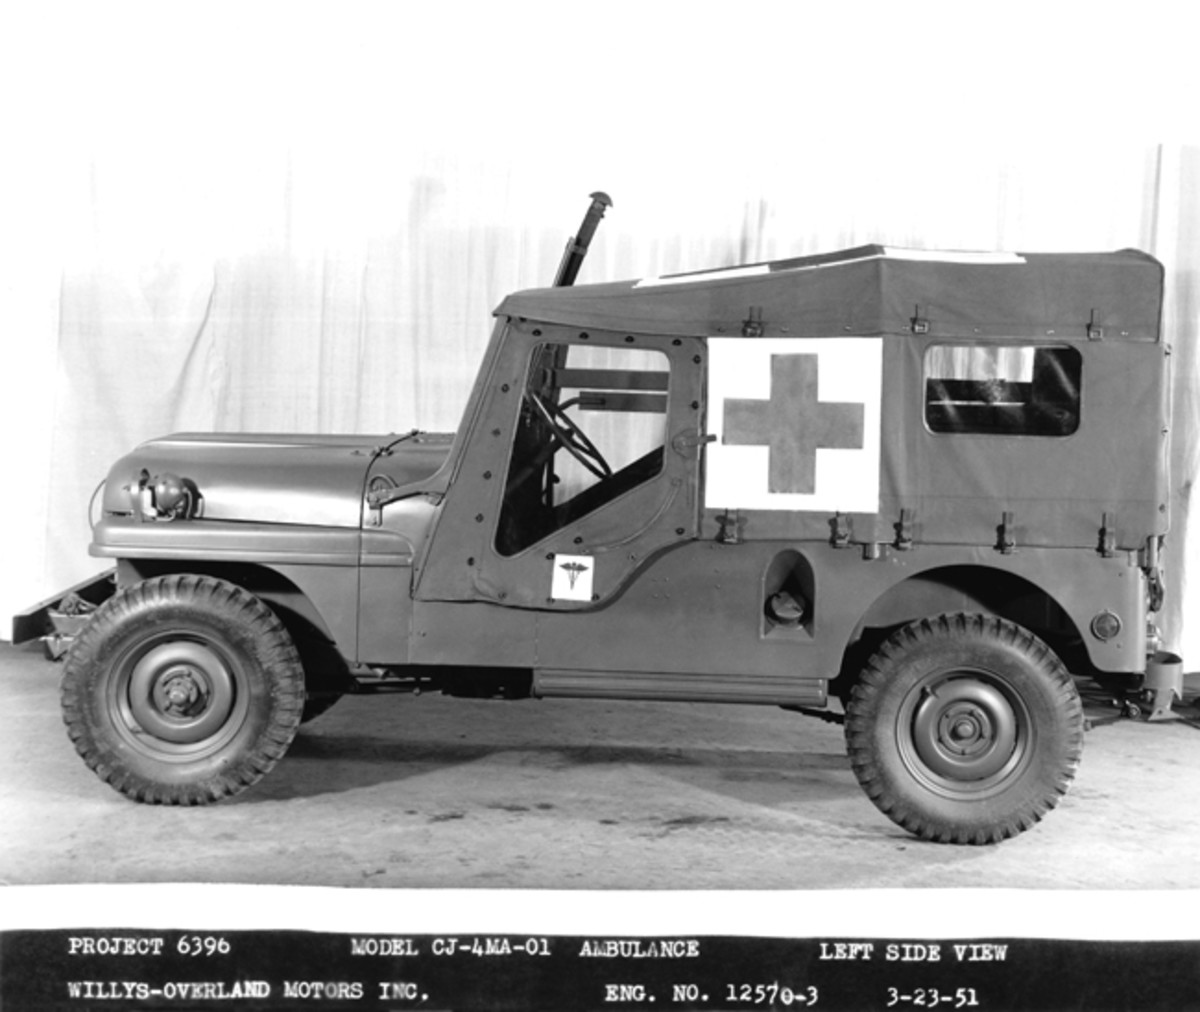 1951 Willys-Overland factory photo of what they referred to as the Model CJ-4MA-01.